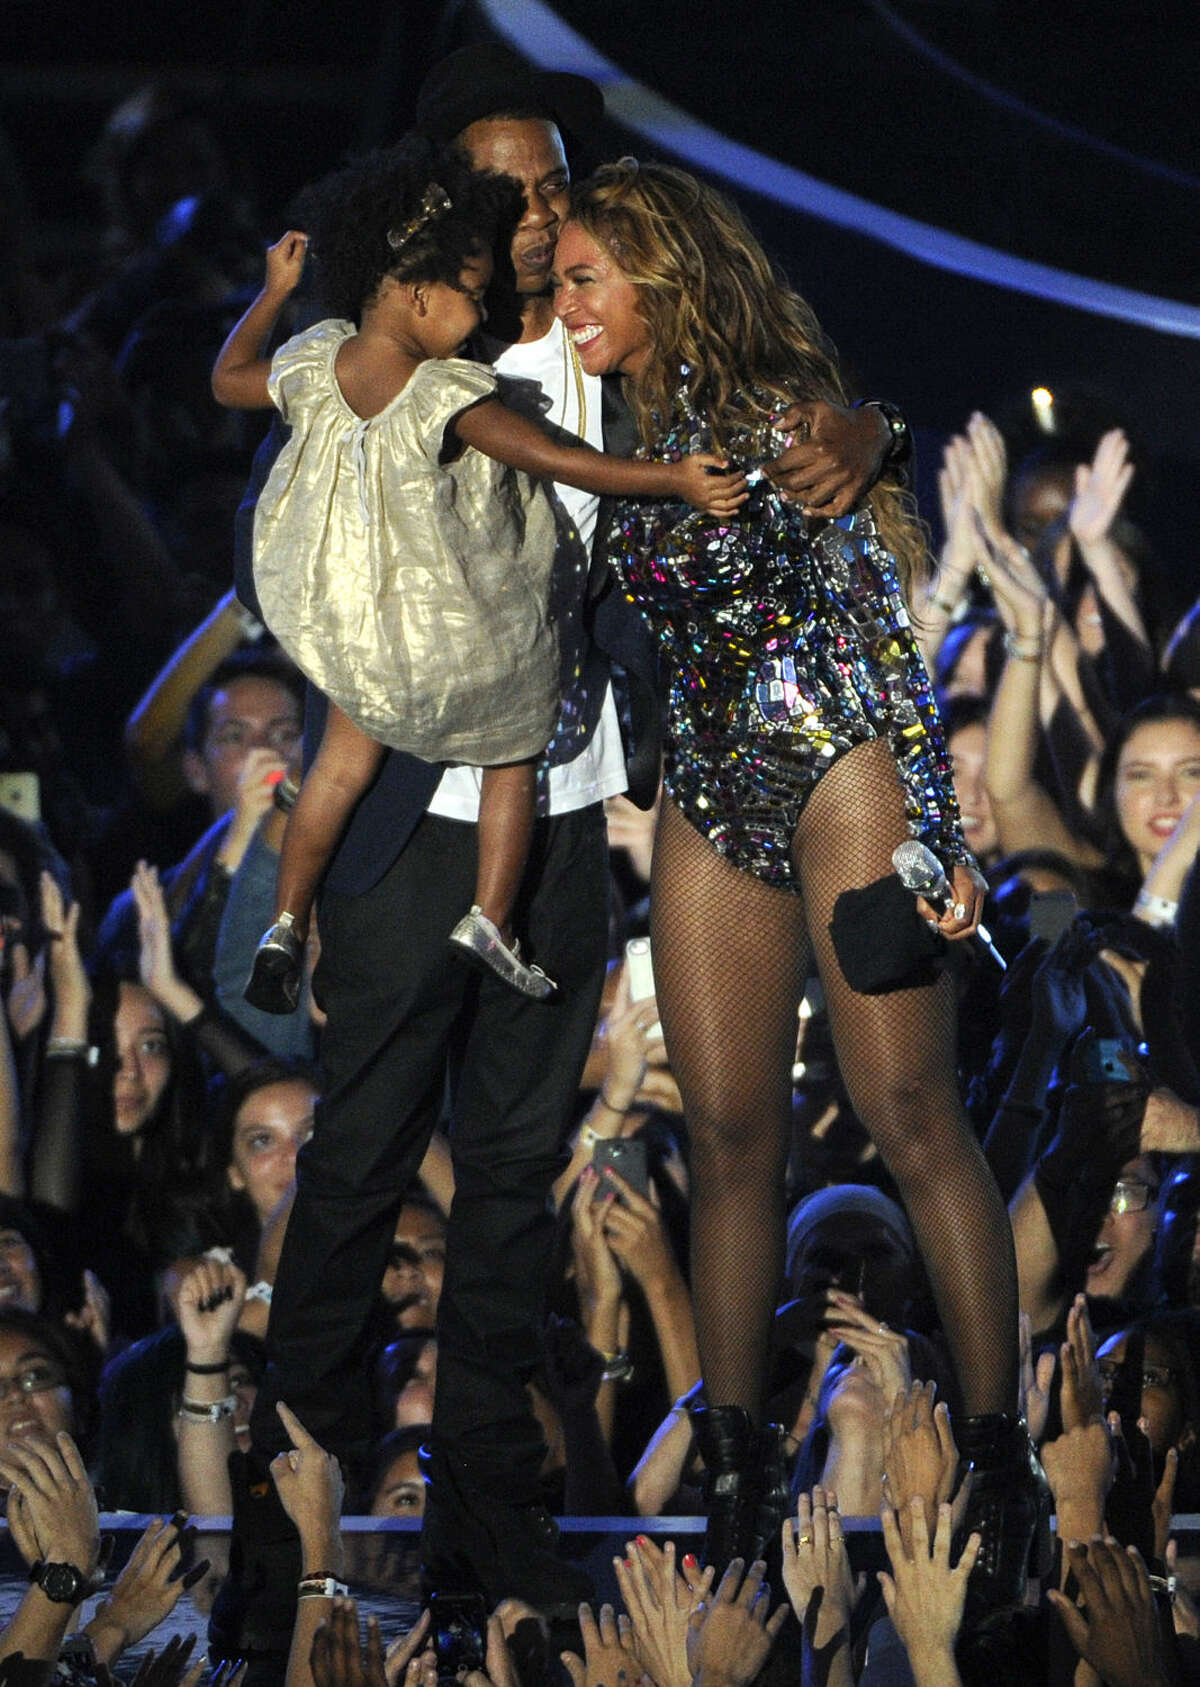 Beyonce smiles on stage with Jay Z and their daughter Blue Ivy as she accepts the Video Vanguard Award at the MTV Video Music Awards at The Forum on Sunday, Aug. 24, 2014, in Inglewood, Calif. (Photo by Chris Pizzello/Invision/AP)